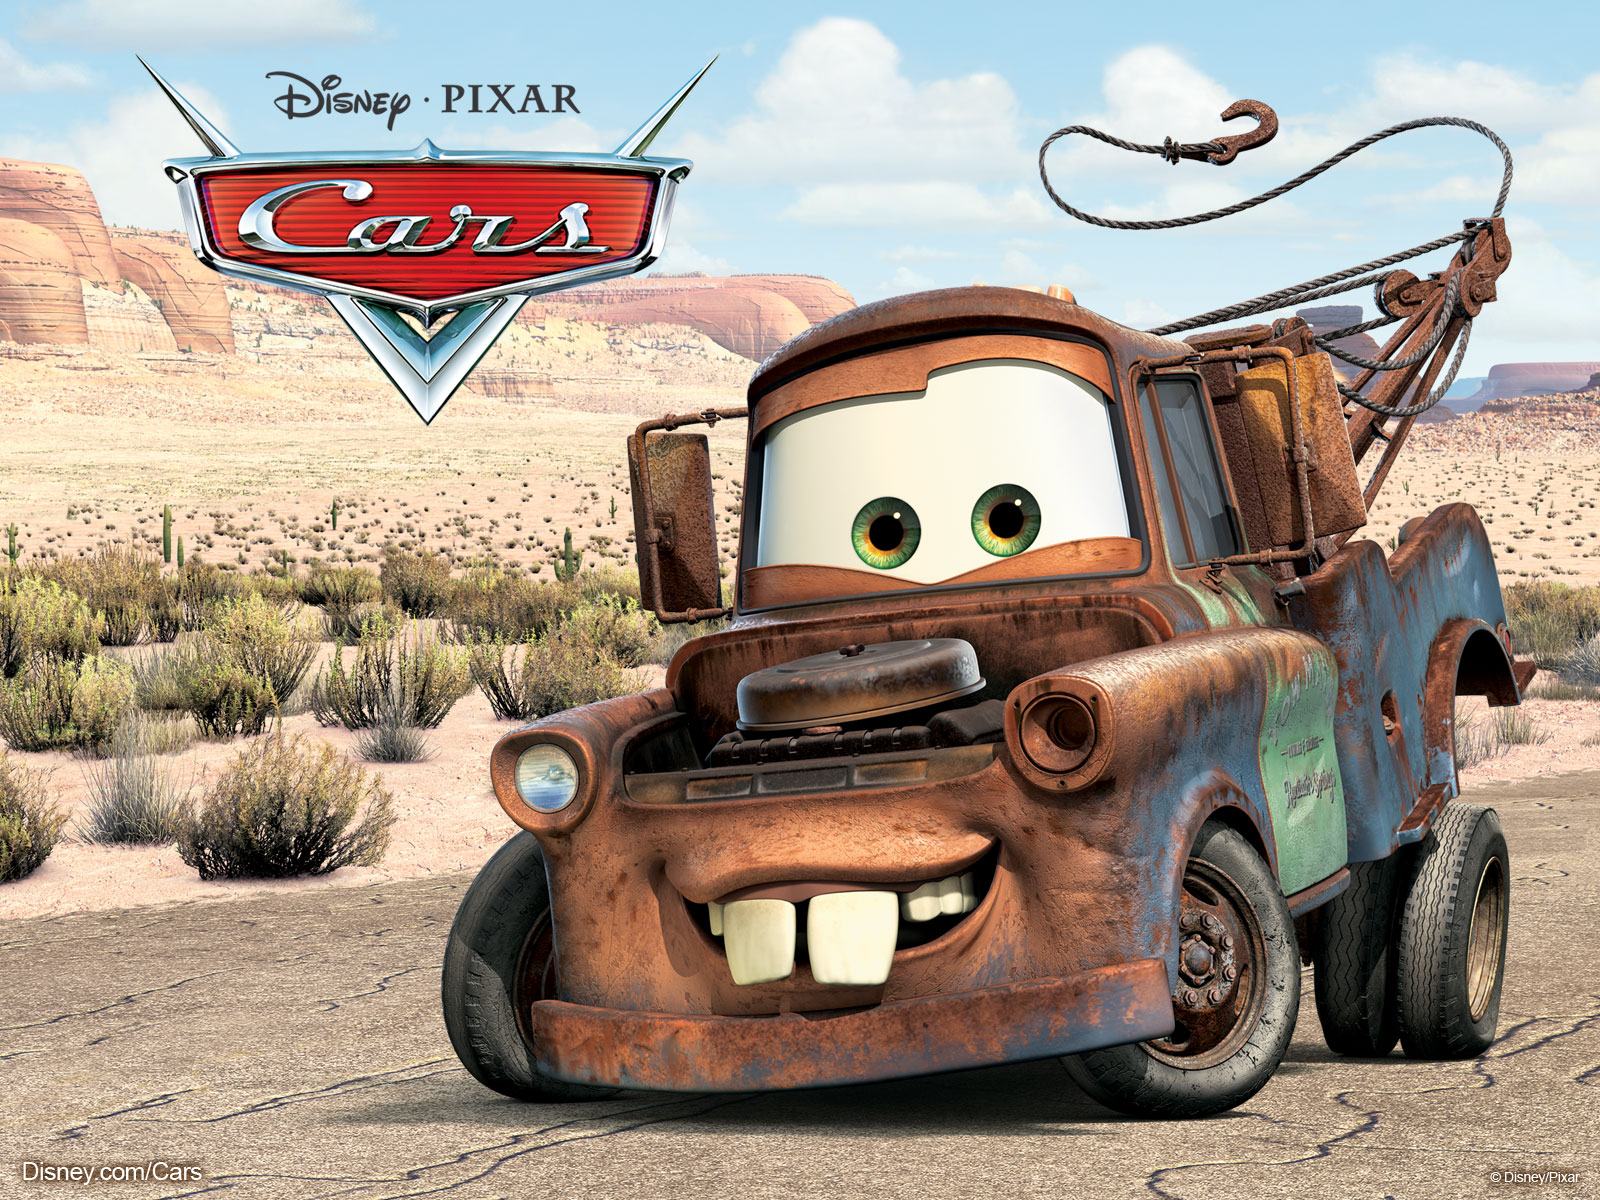 Mater The Tow Truck From Disney Pixar Movie Cars Wallpaper